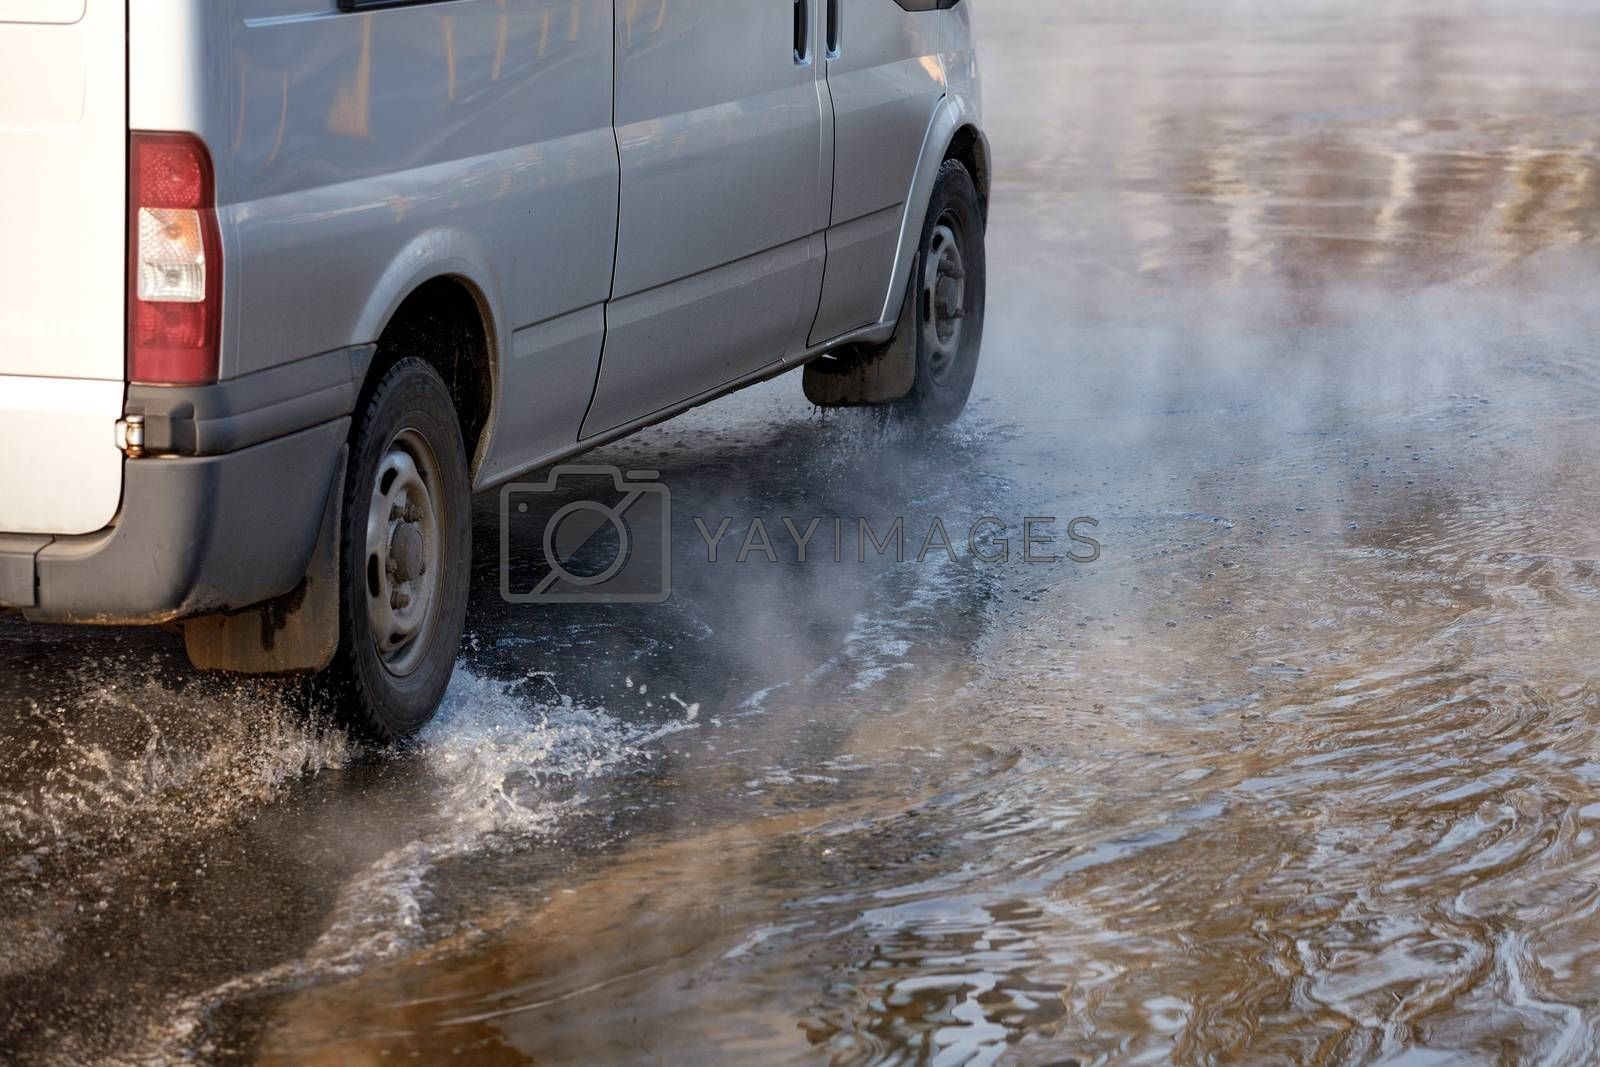 An accident on a heating main, a break in a pipe with hot water, a car driving along a flooded road, water vapor forms a smokescreen on the asphalt, an image with copy space.